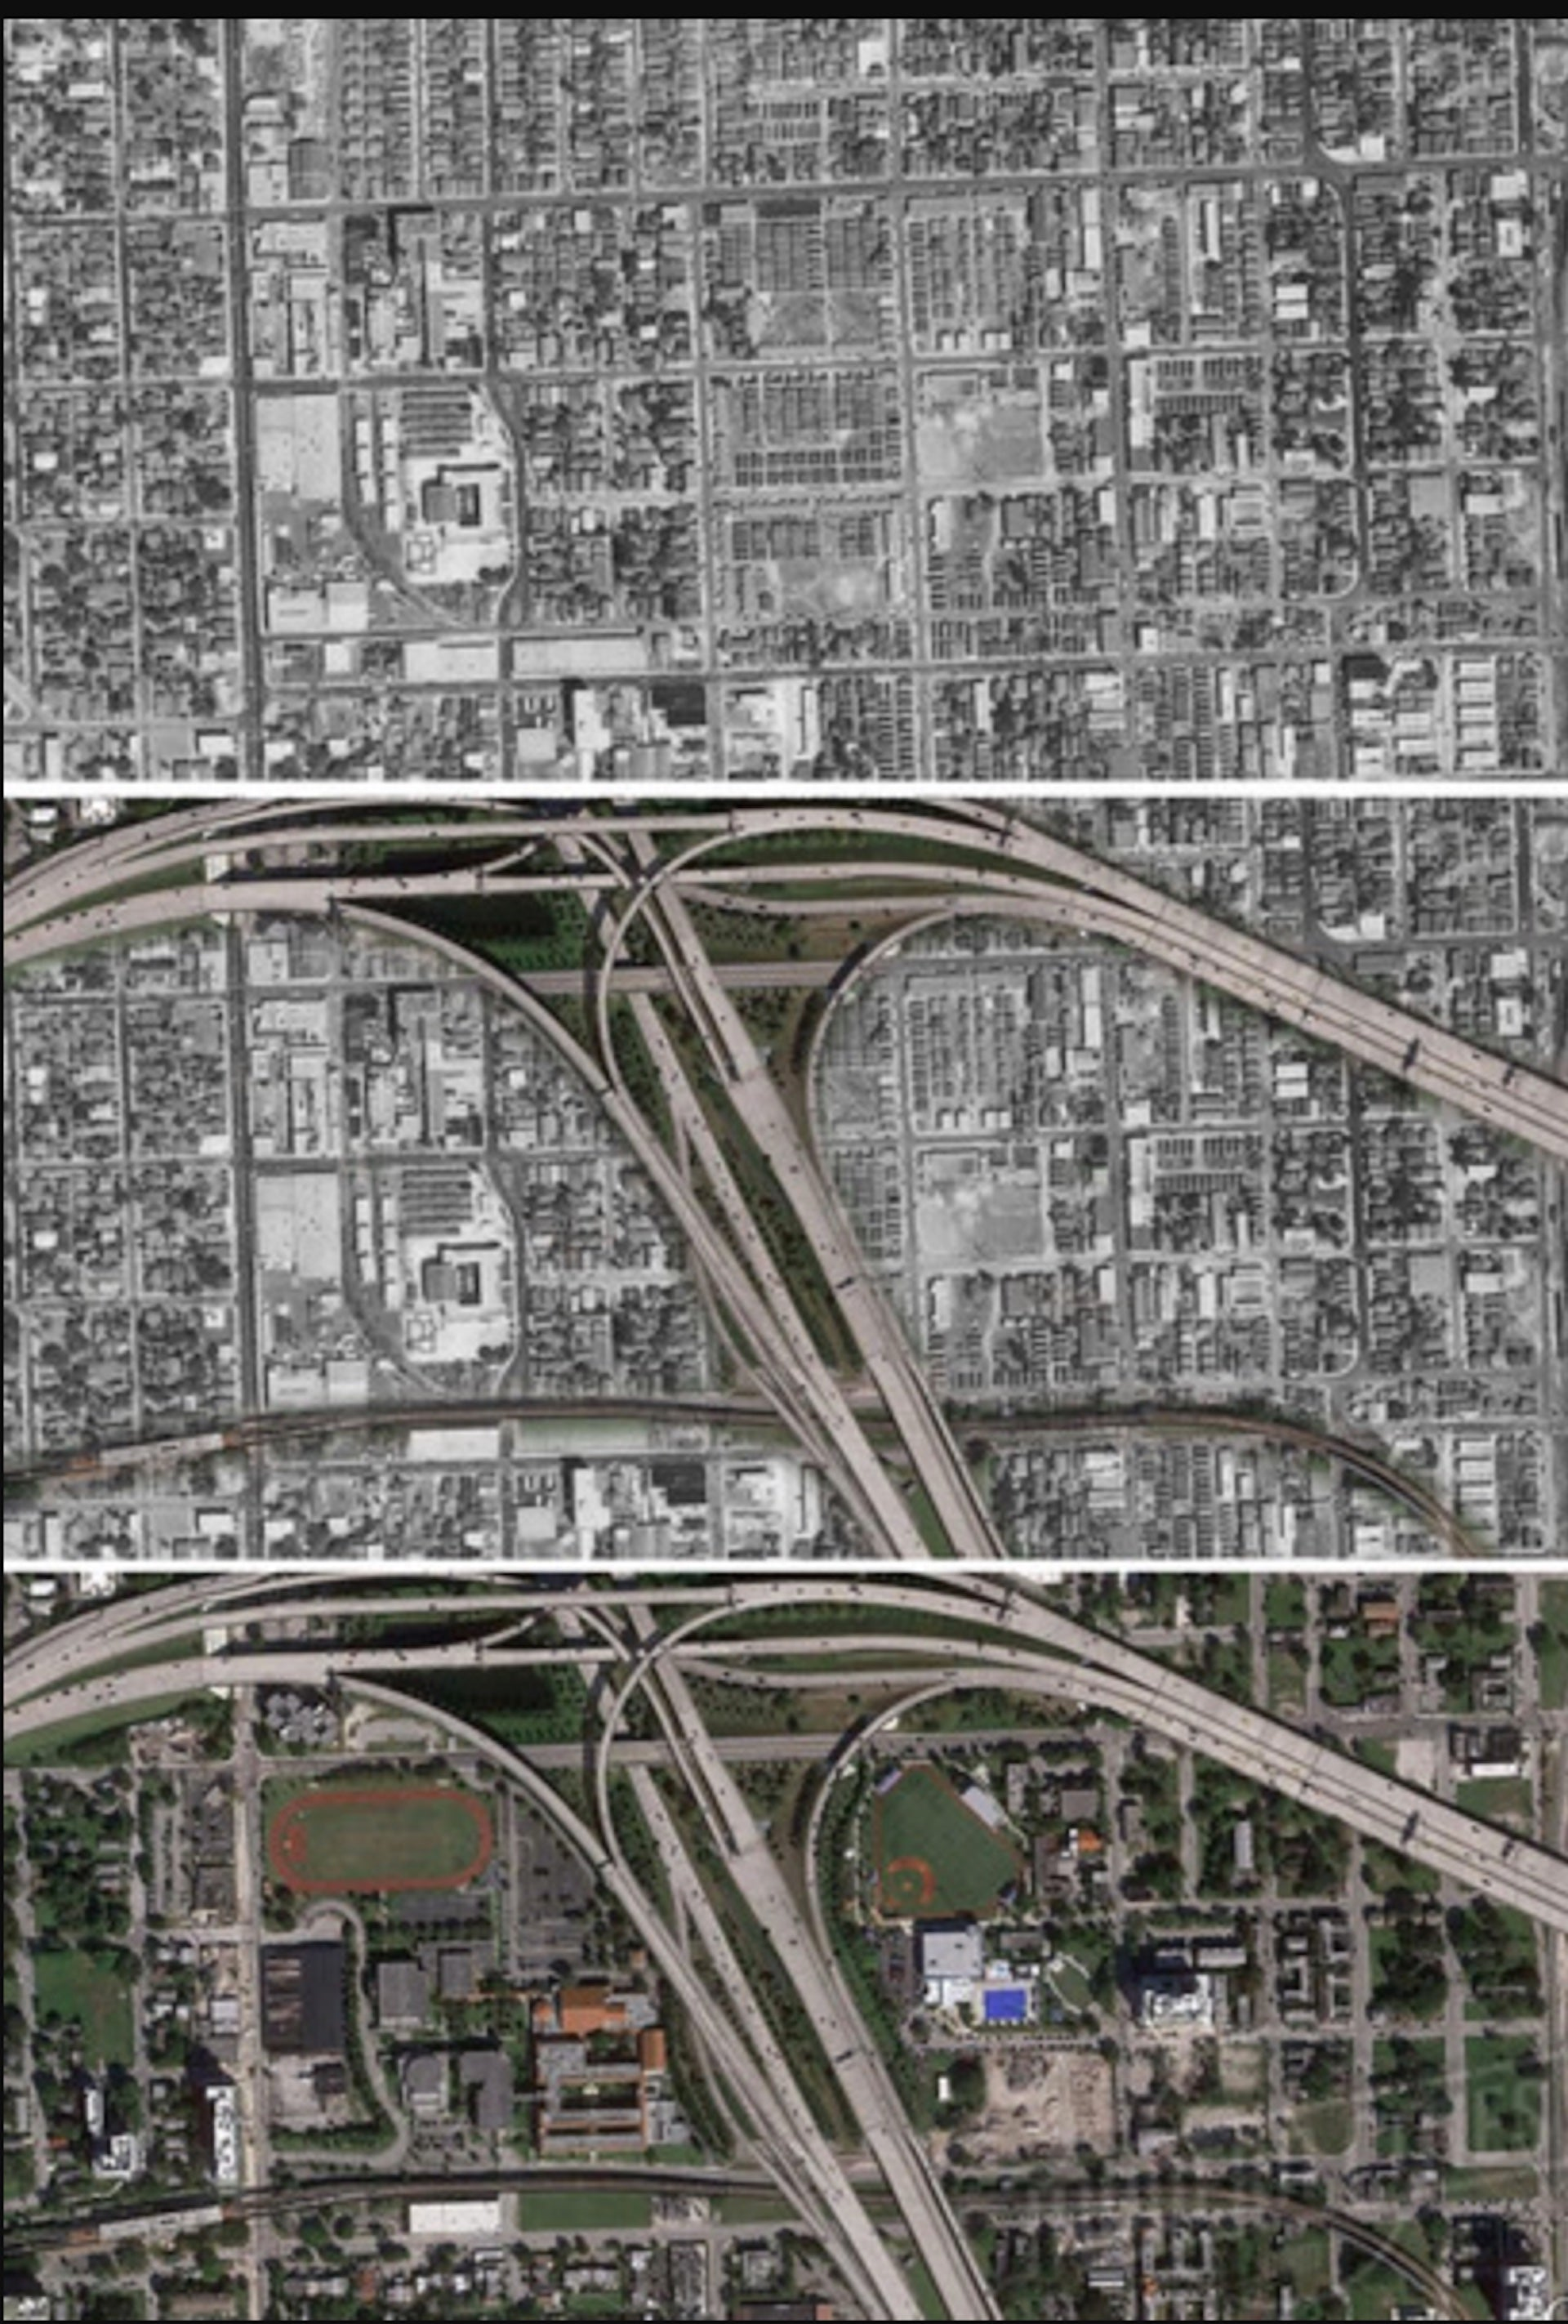 The transformation of the Overtown neighborhood—once known as Colored Town—in downtown Miami, Florida, before and after the insertion of the I-95/I-395 interchange in the 1960s. Image via Moderncities.com